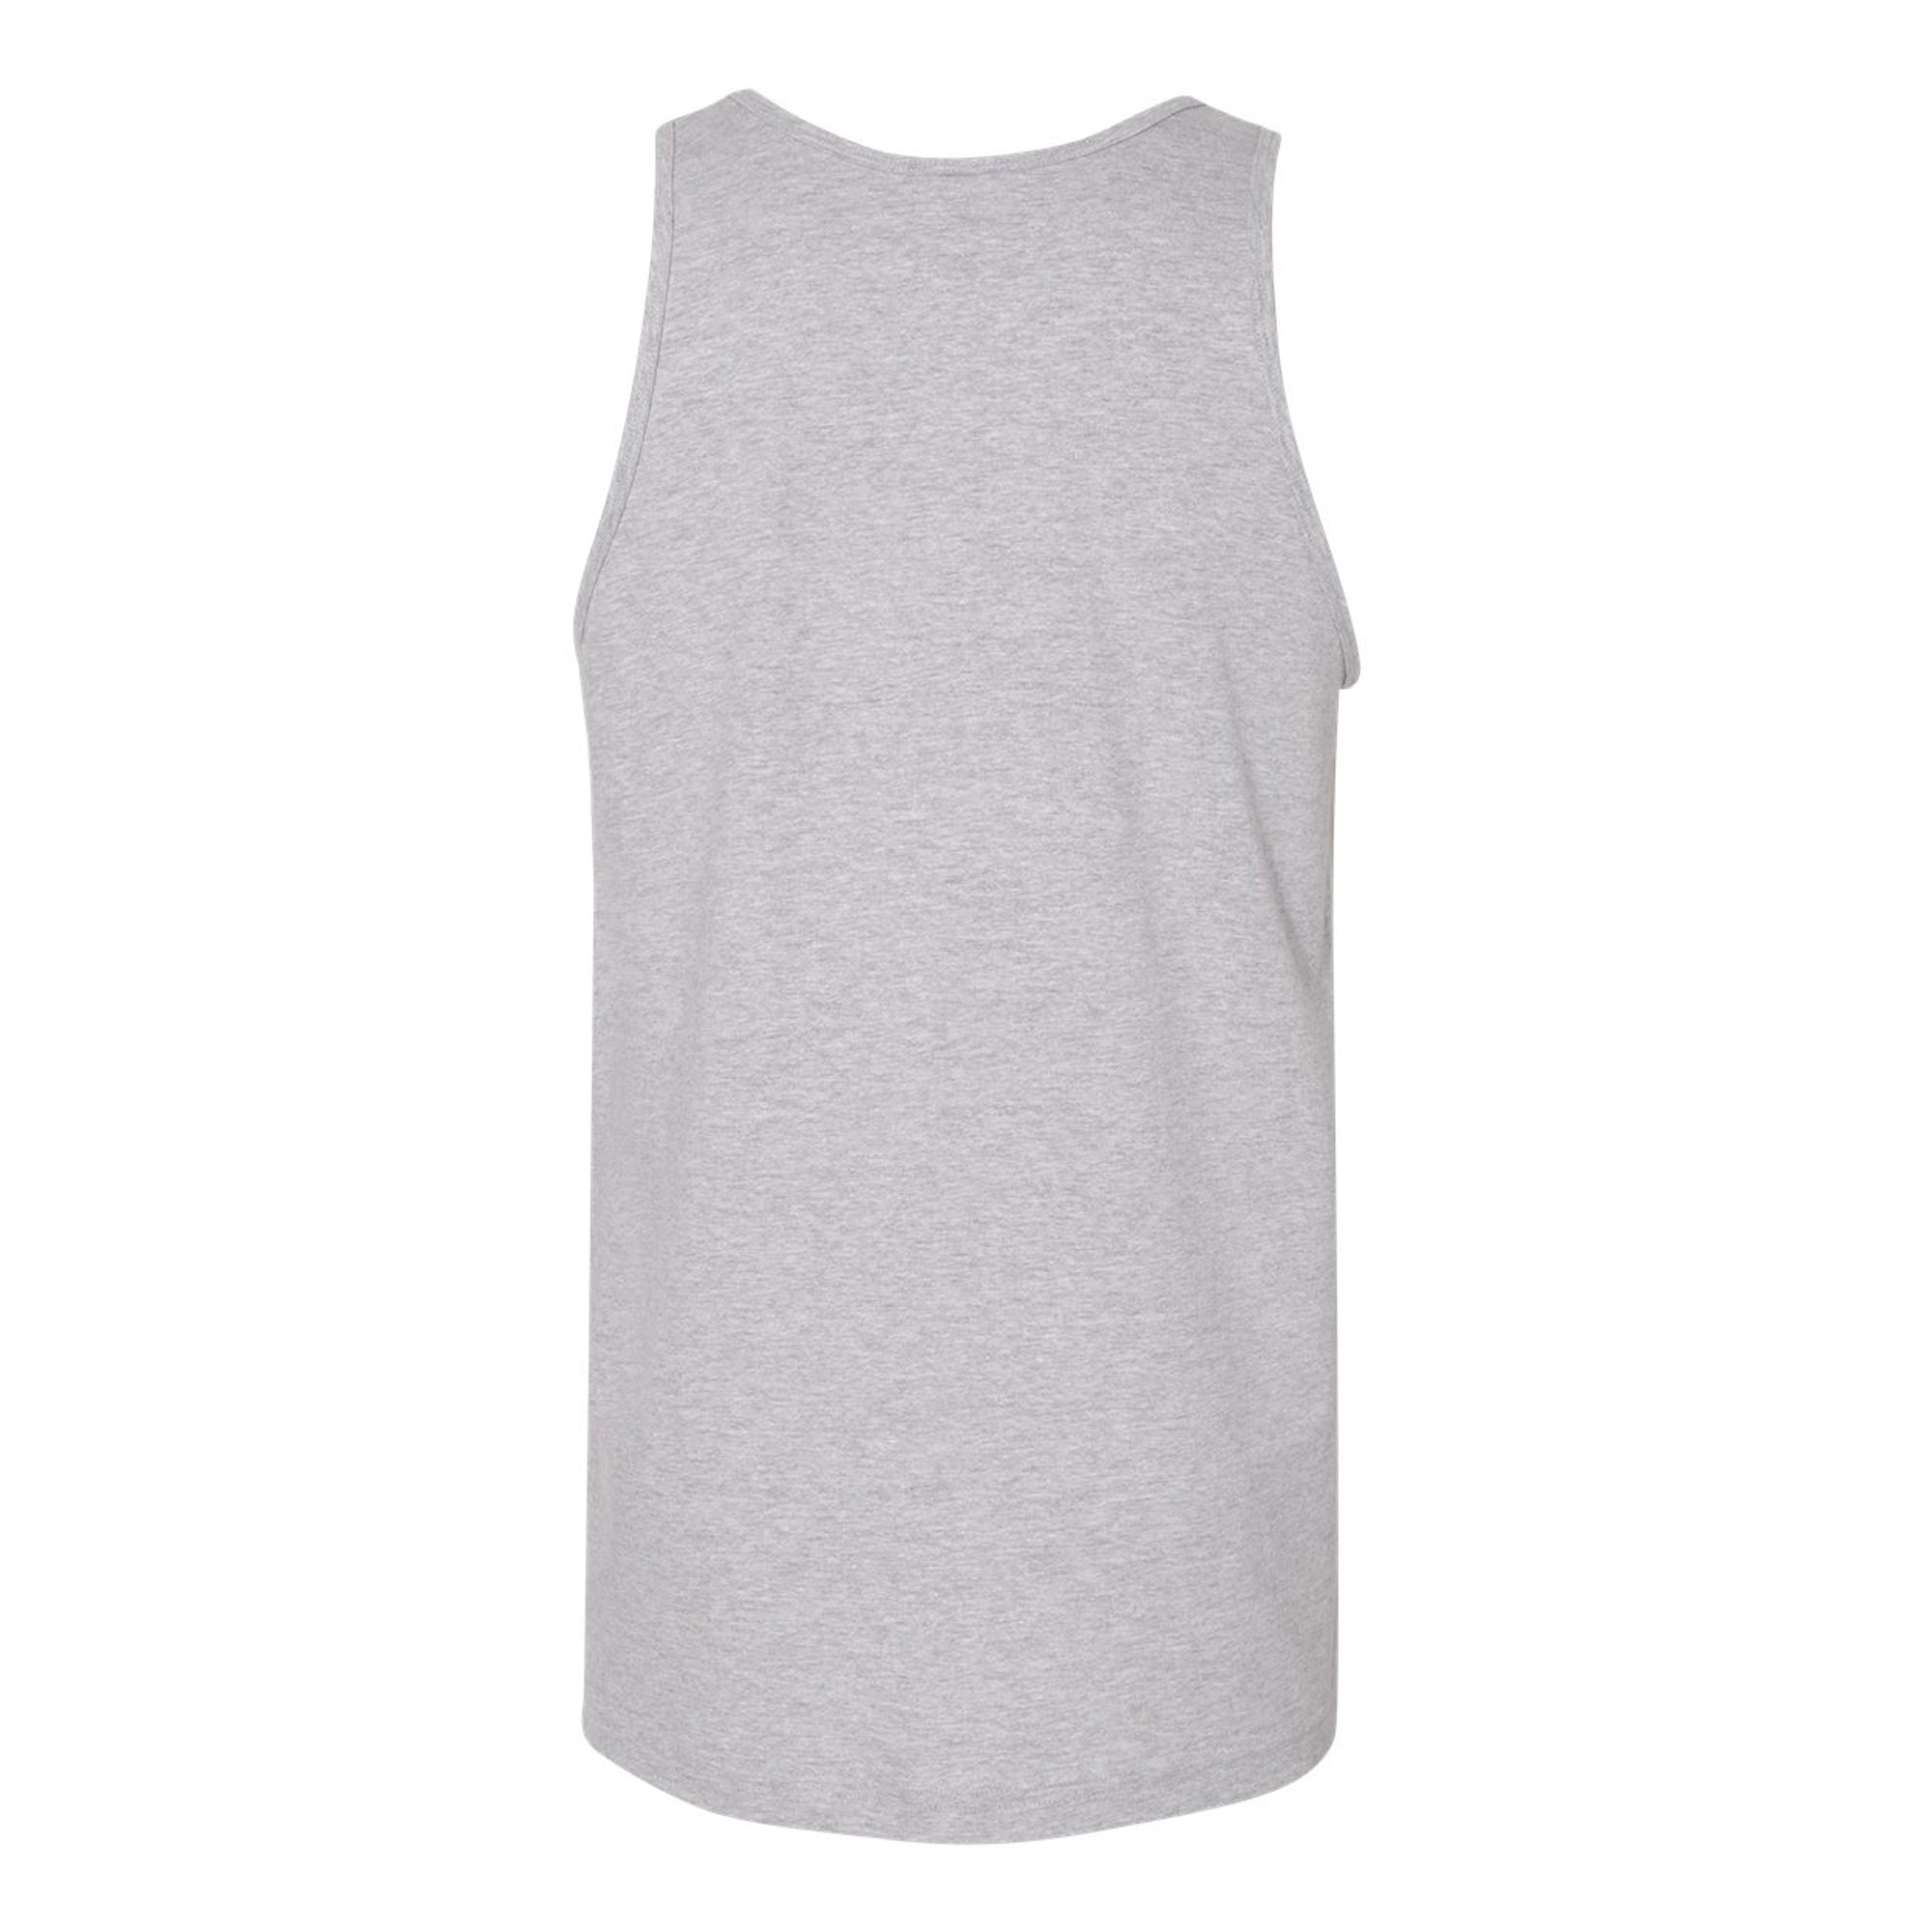 Premium Mountain Logo Tank - Heather Grey